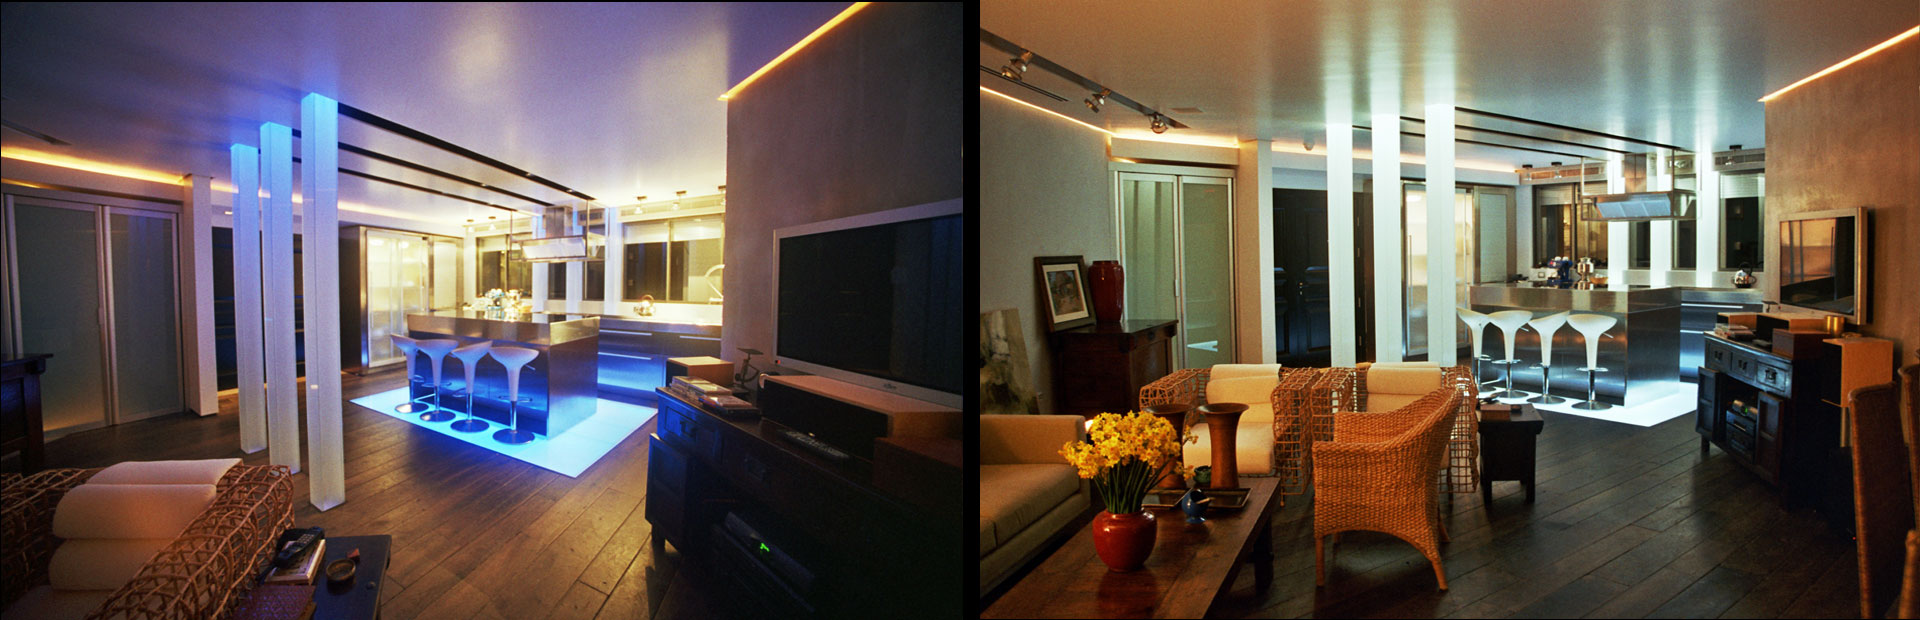 benny tevet light lines design with lighting hidden תאורה נסתרת dor confino architect sea sun 2